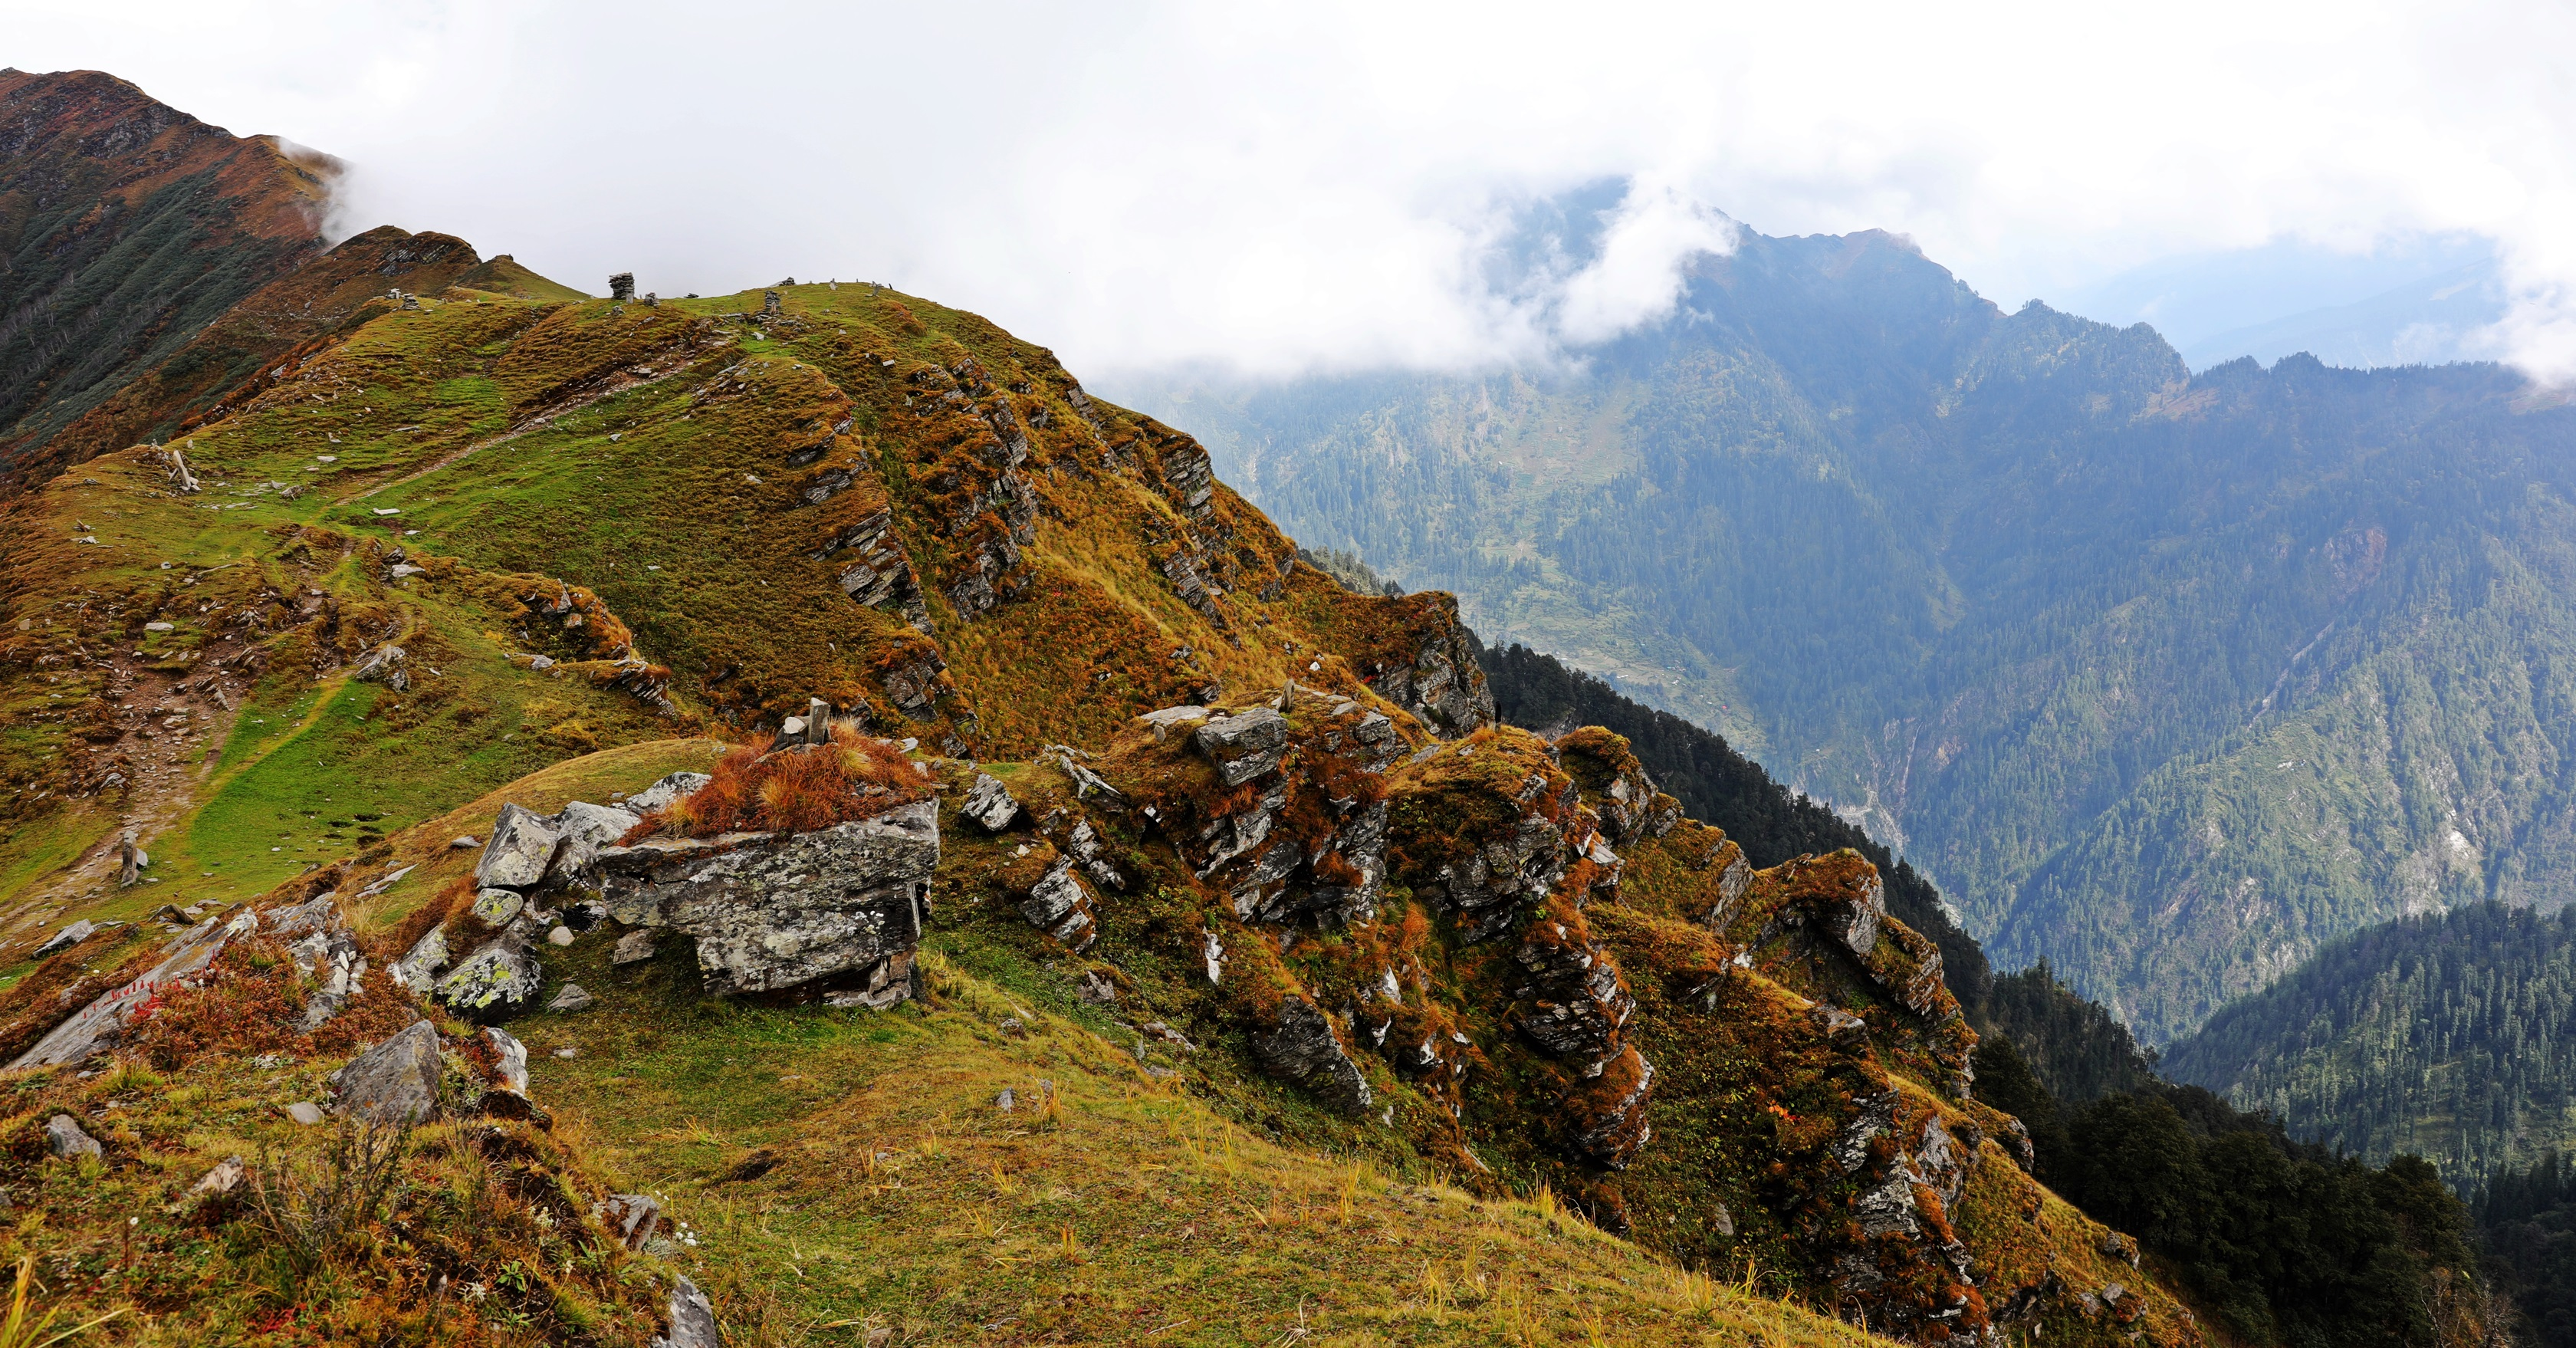 Mountain Ridge on the Naggar to Malana Trek